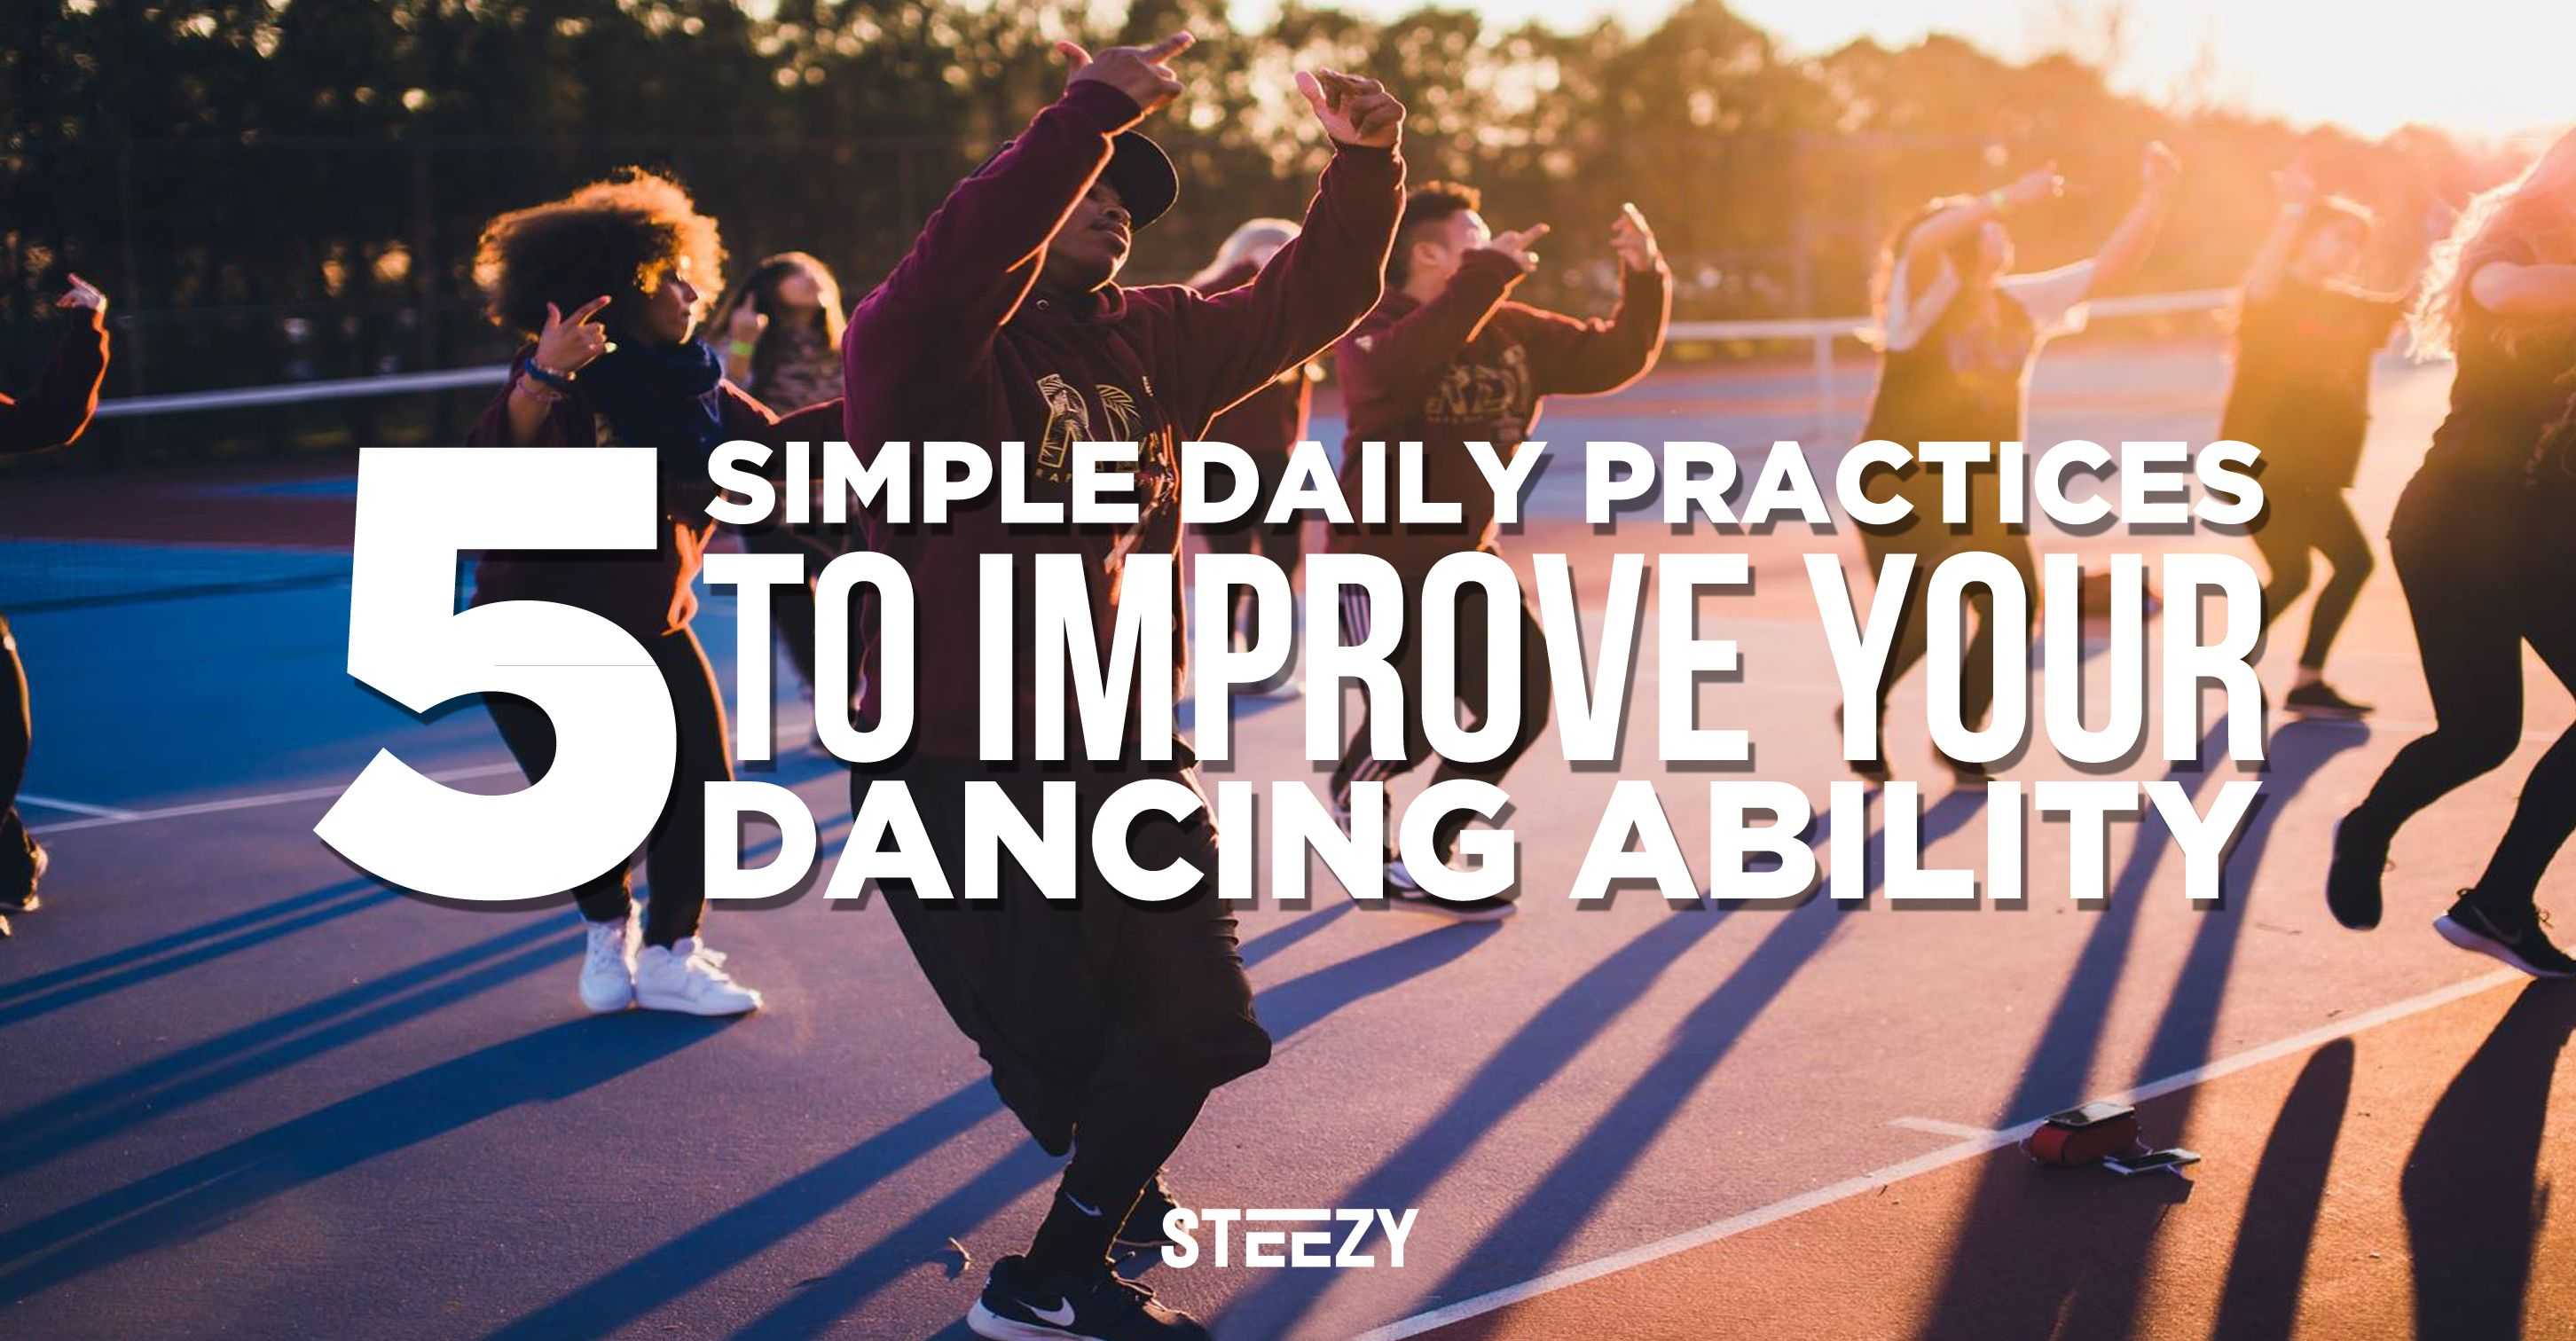 Wanna know how to improve your dancing skills? Small, simple habits can make a huge difference. Start practicing these things to become a better dancer!